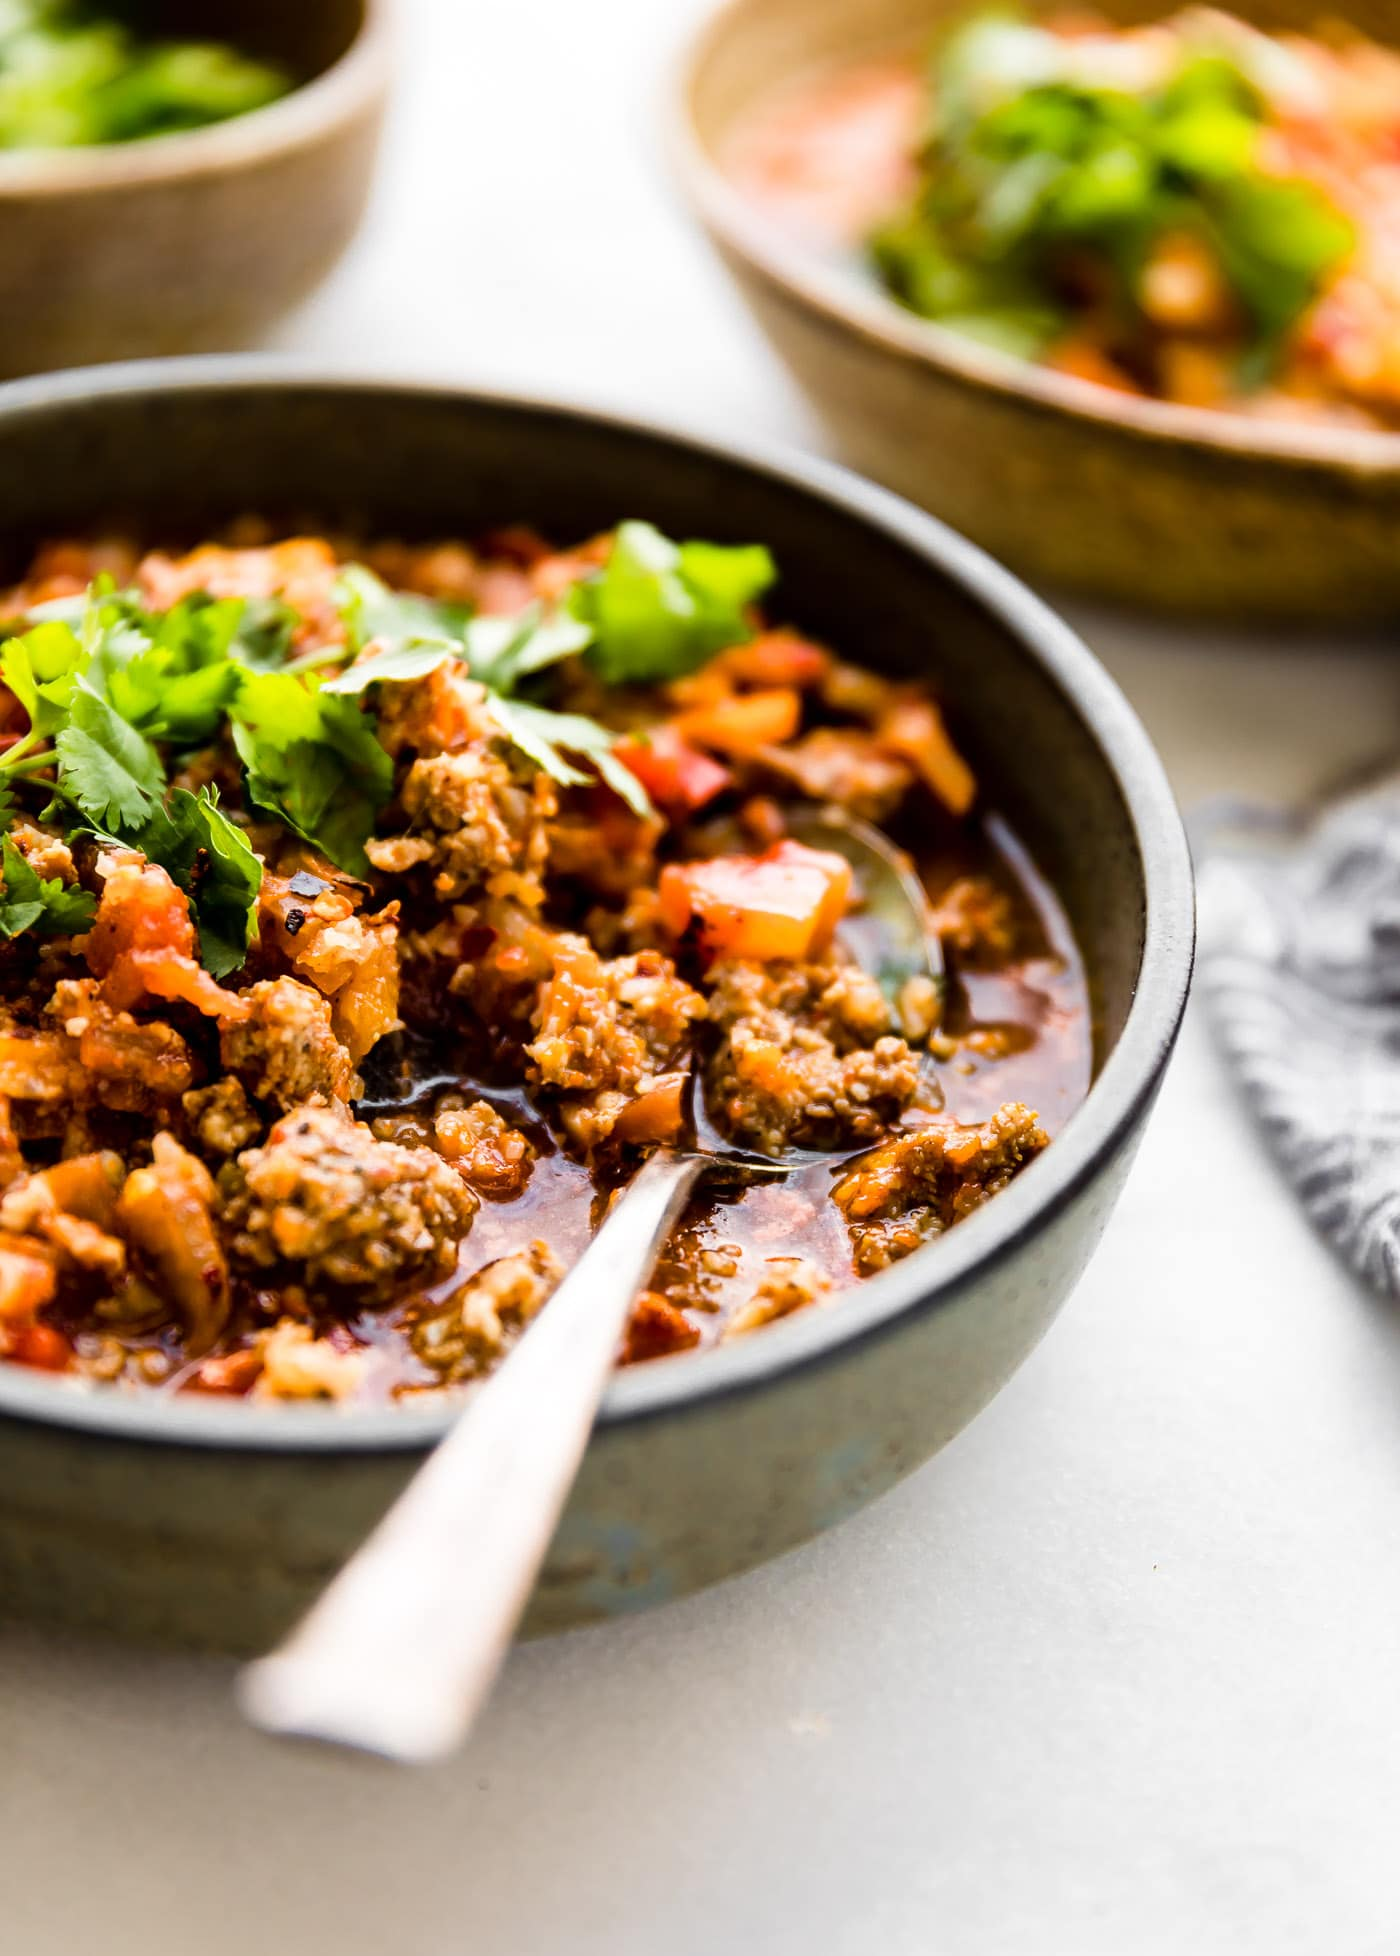 Crock pot Paleo sweet potato chipotle chili with pork